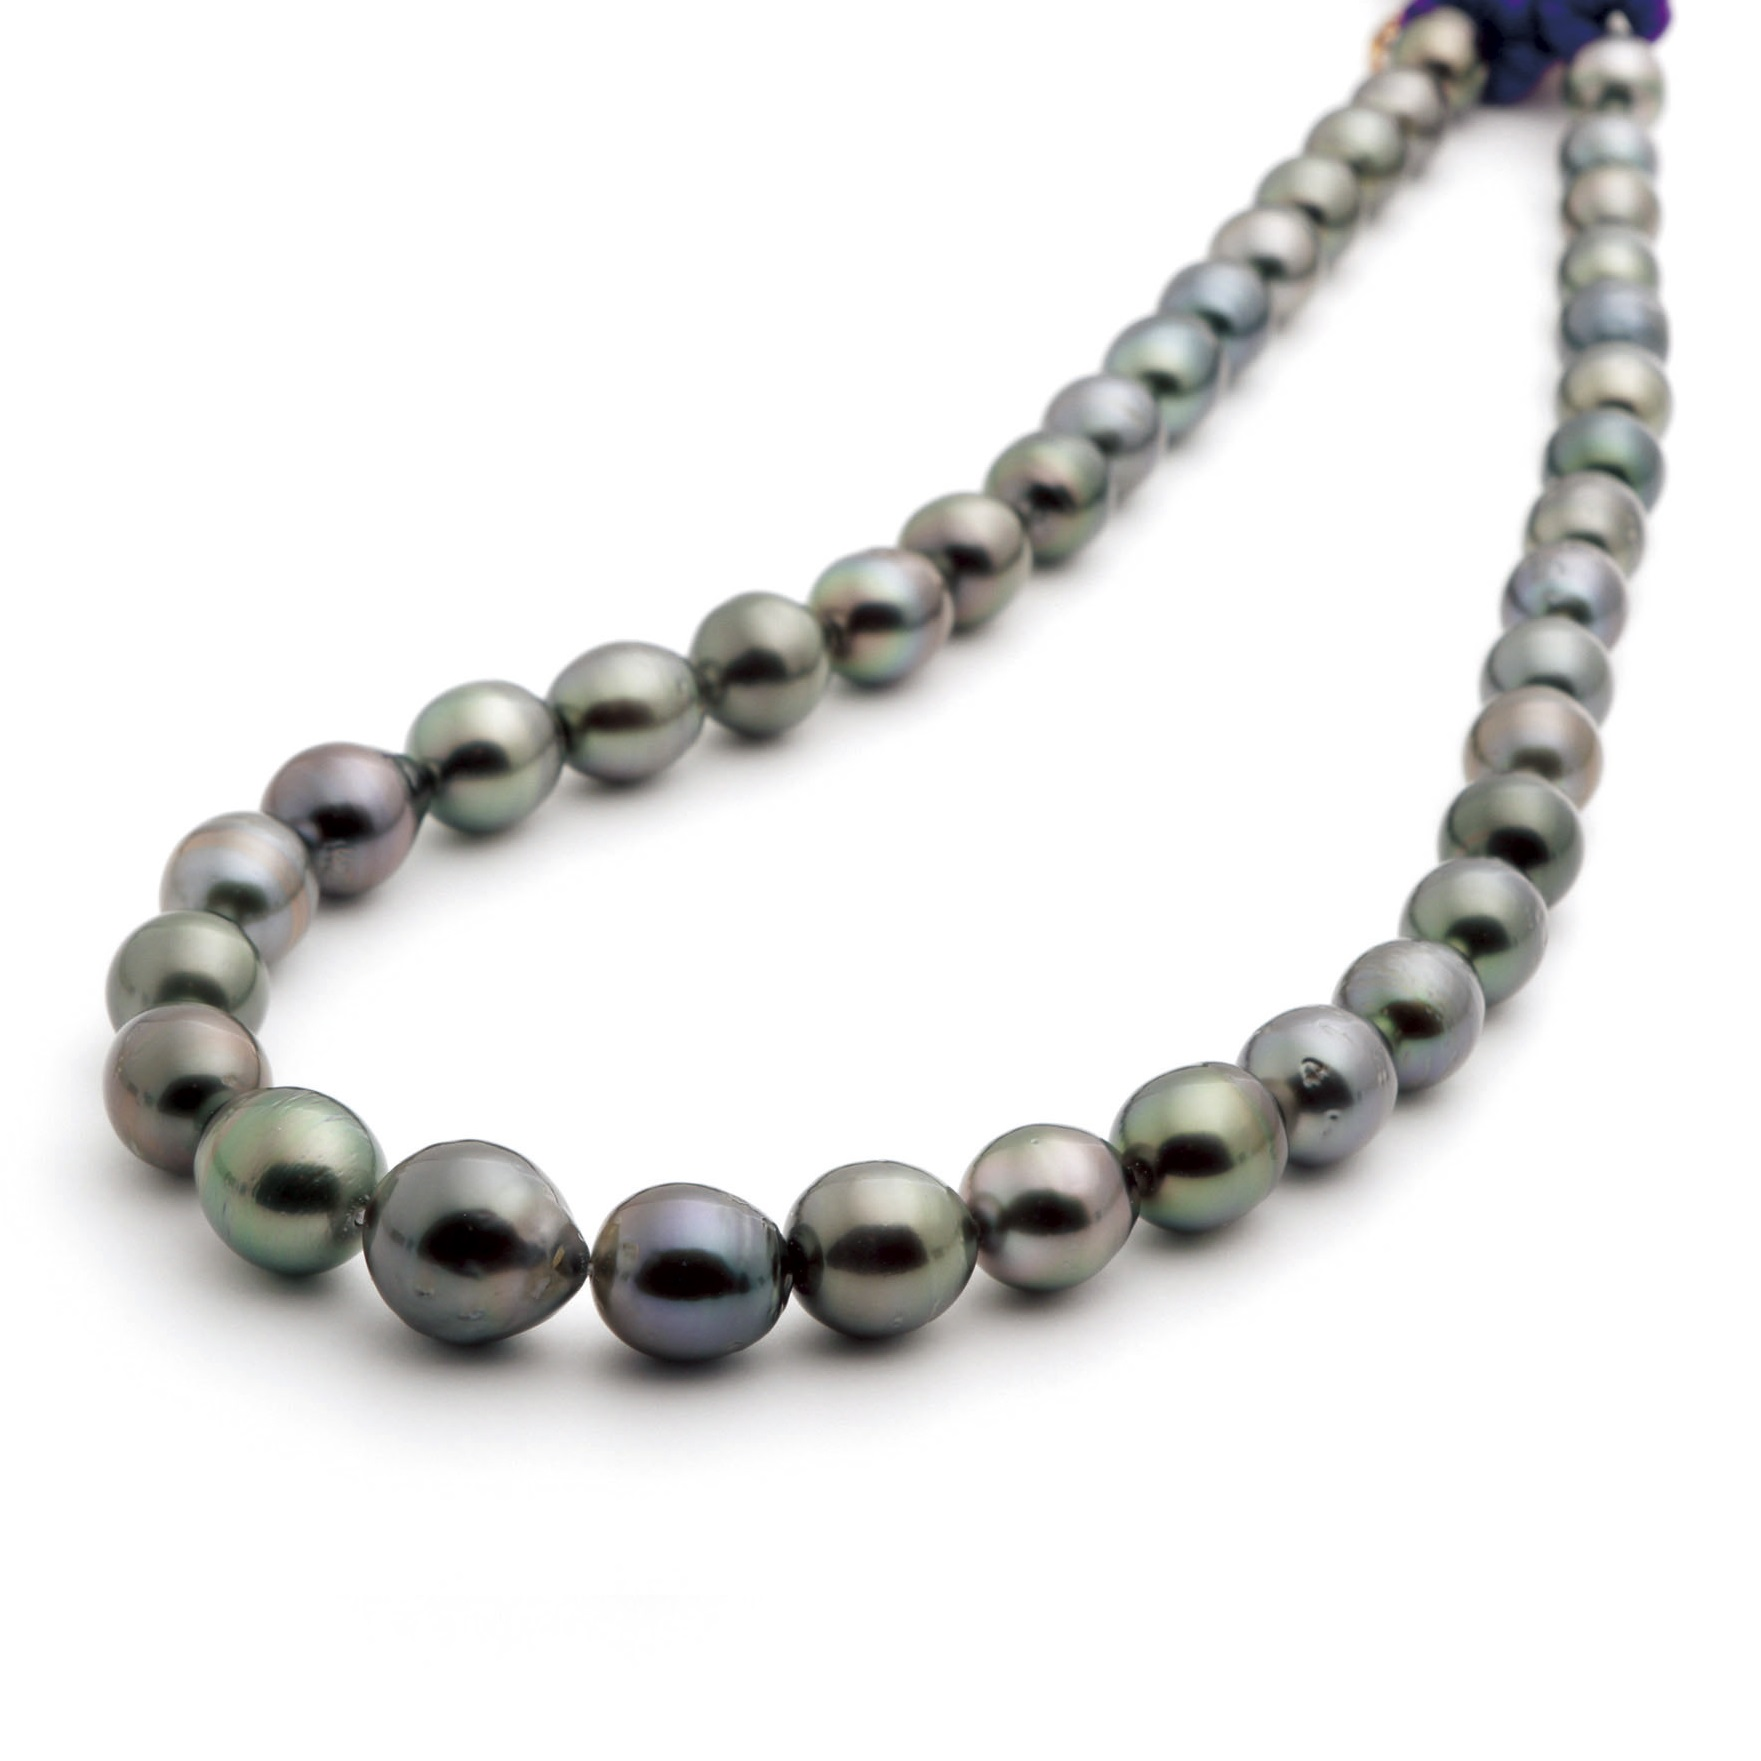 South Sea Pearl Necklace ATN999Z010